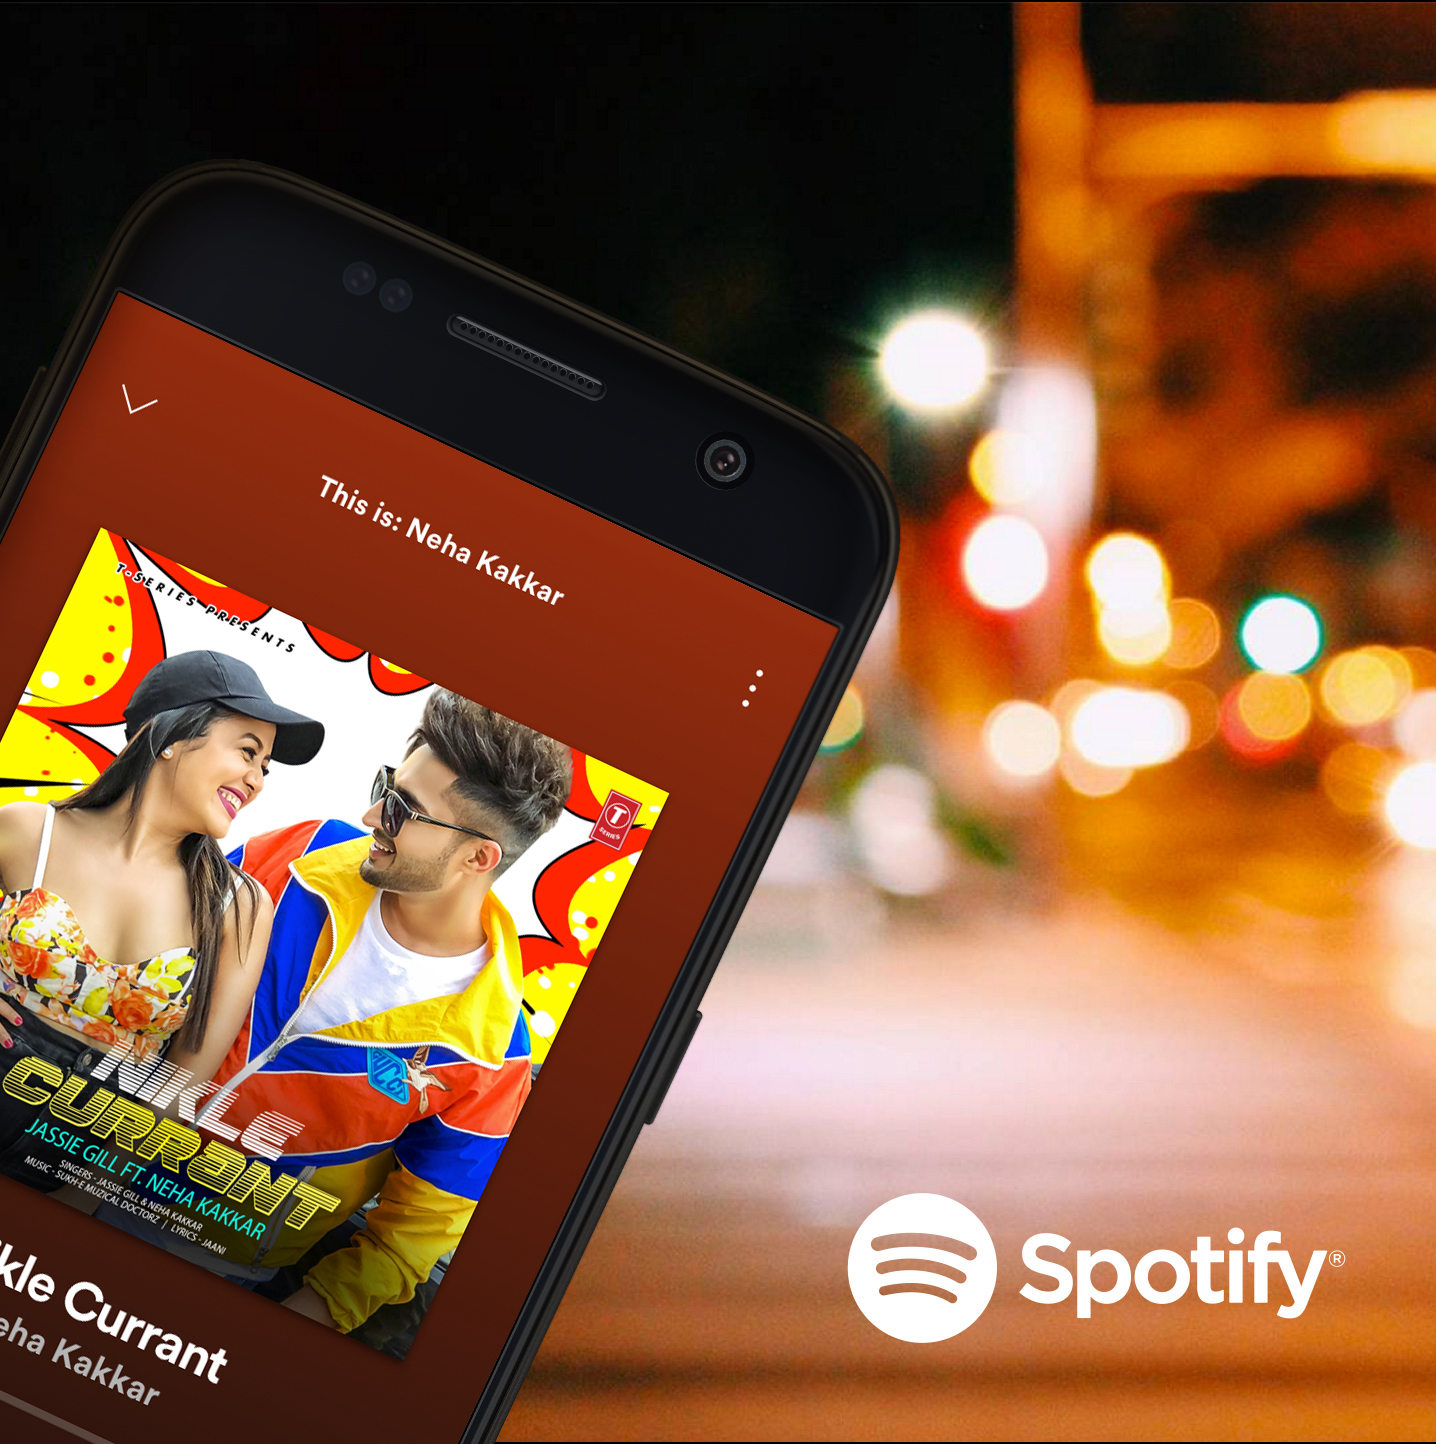 5 things you need to know about new music streaming app